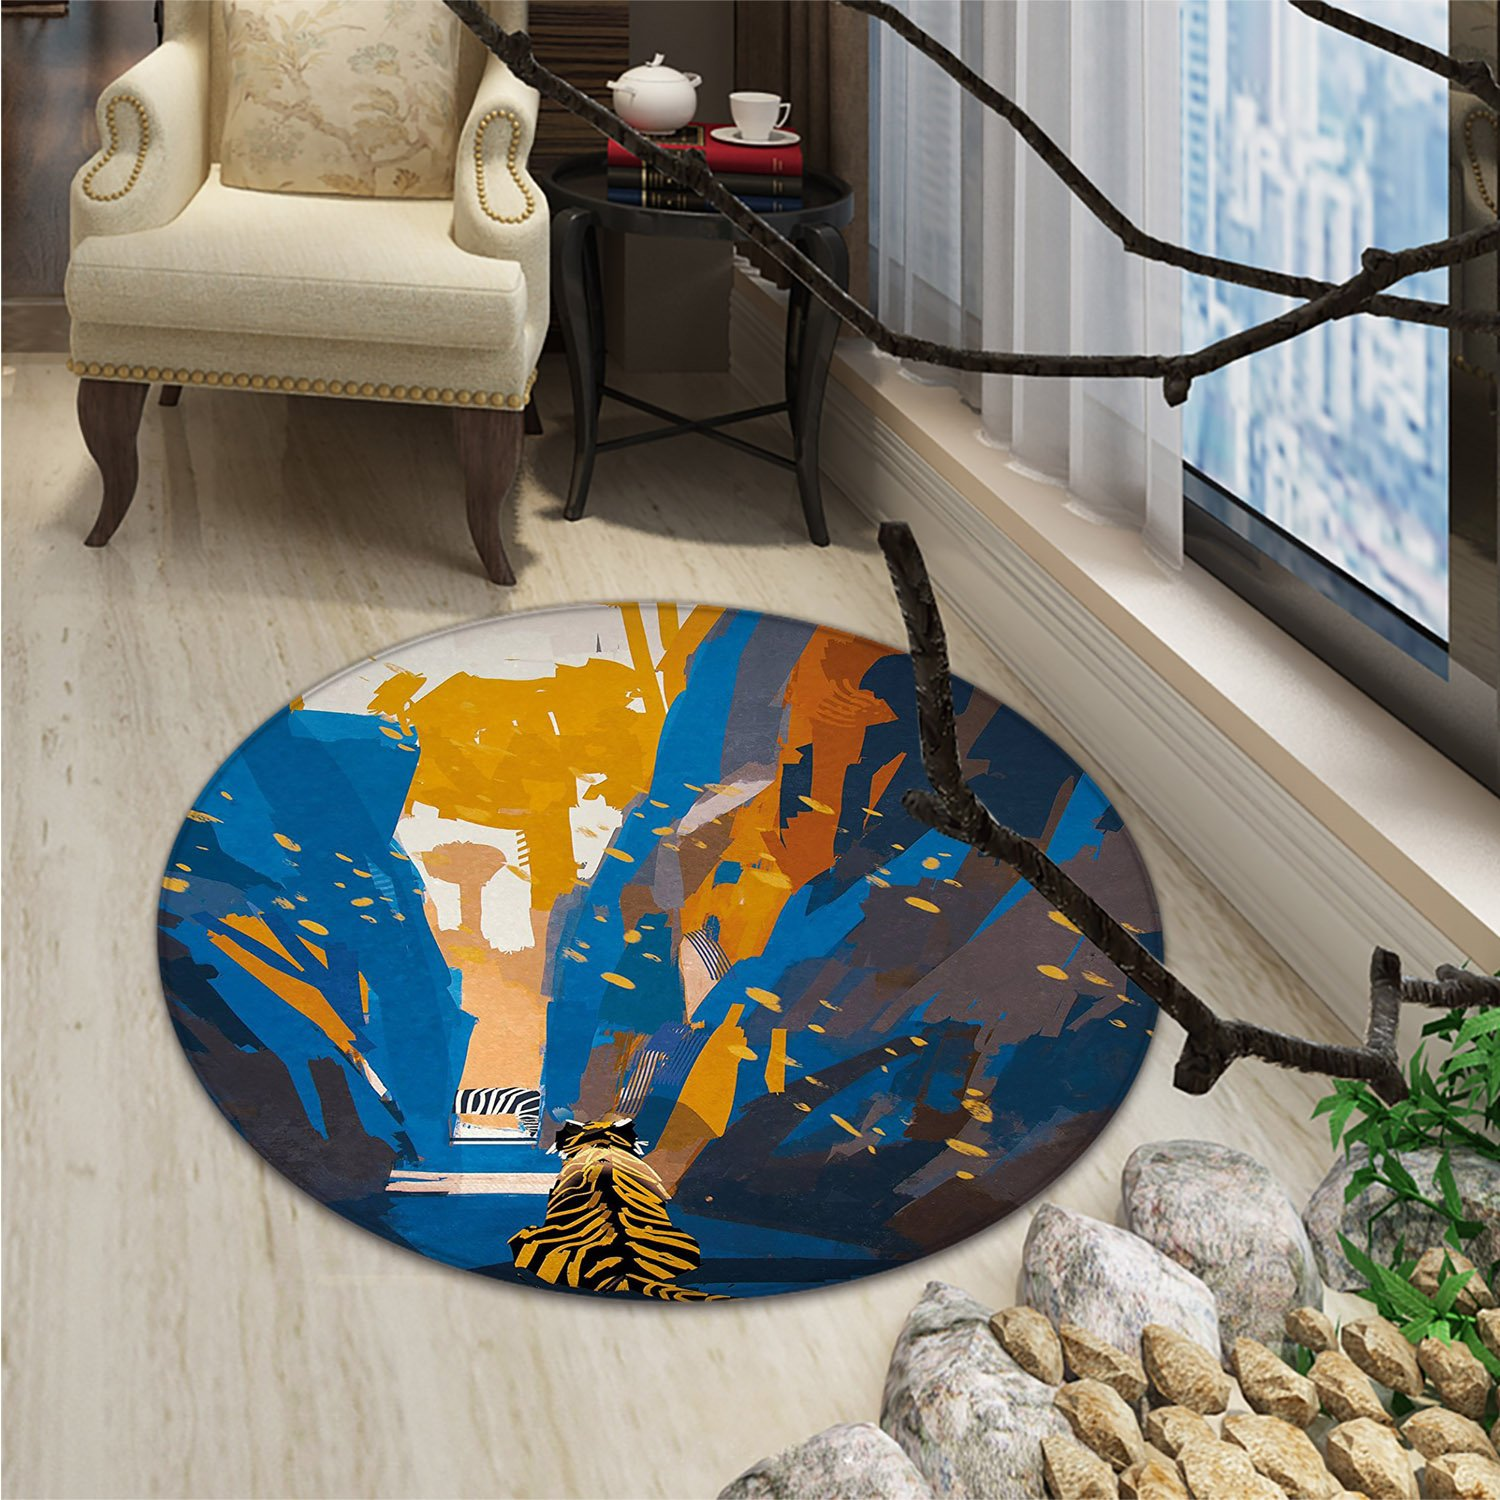 Fantasy Round Rug Kid Carpet African Tiger in City Streets Narrow Walls Digital Wilderness Jungle SavannahOriental Floor and Carpets Orange Blue